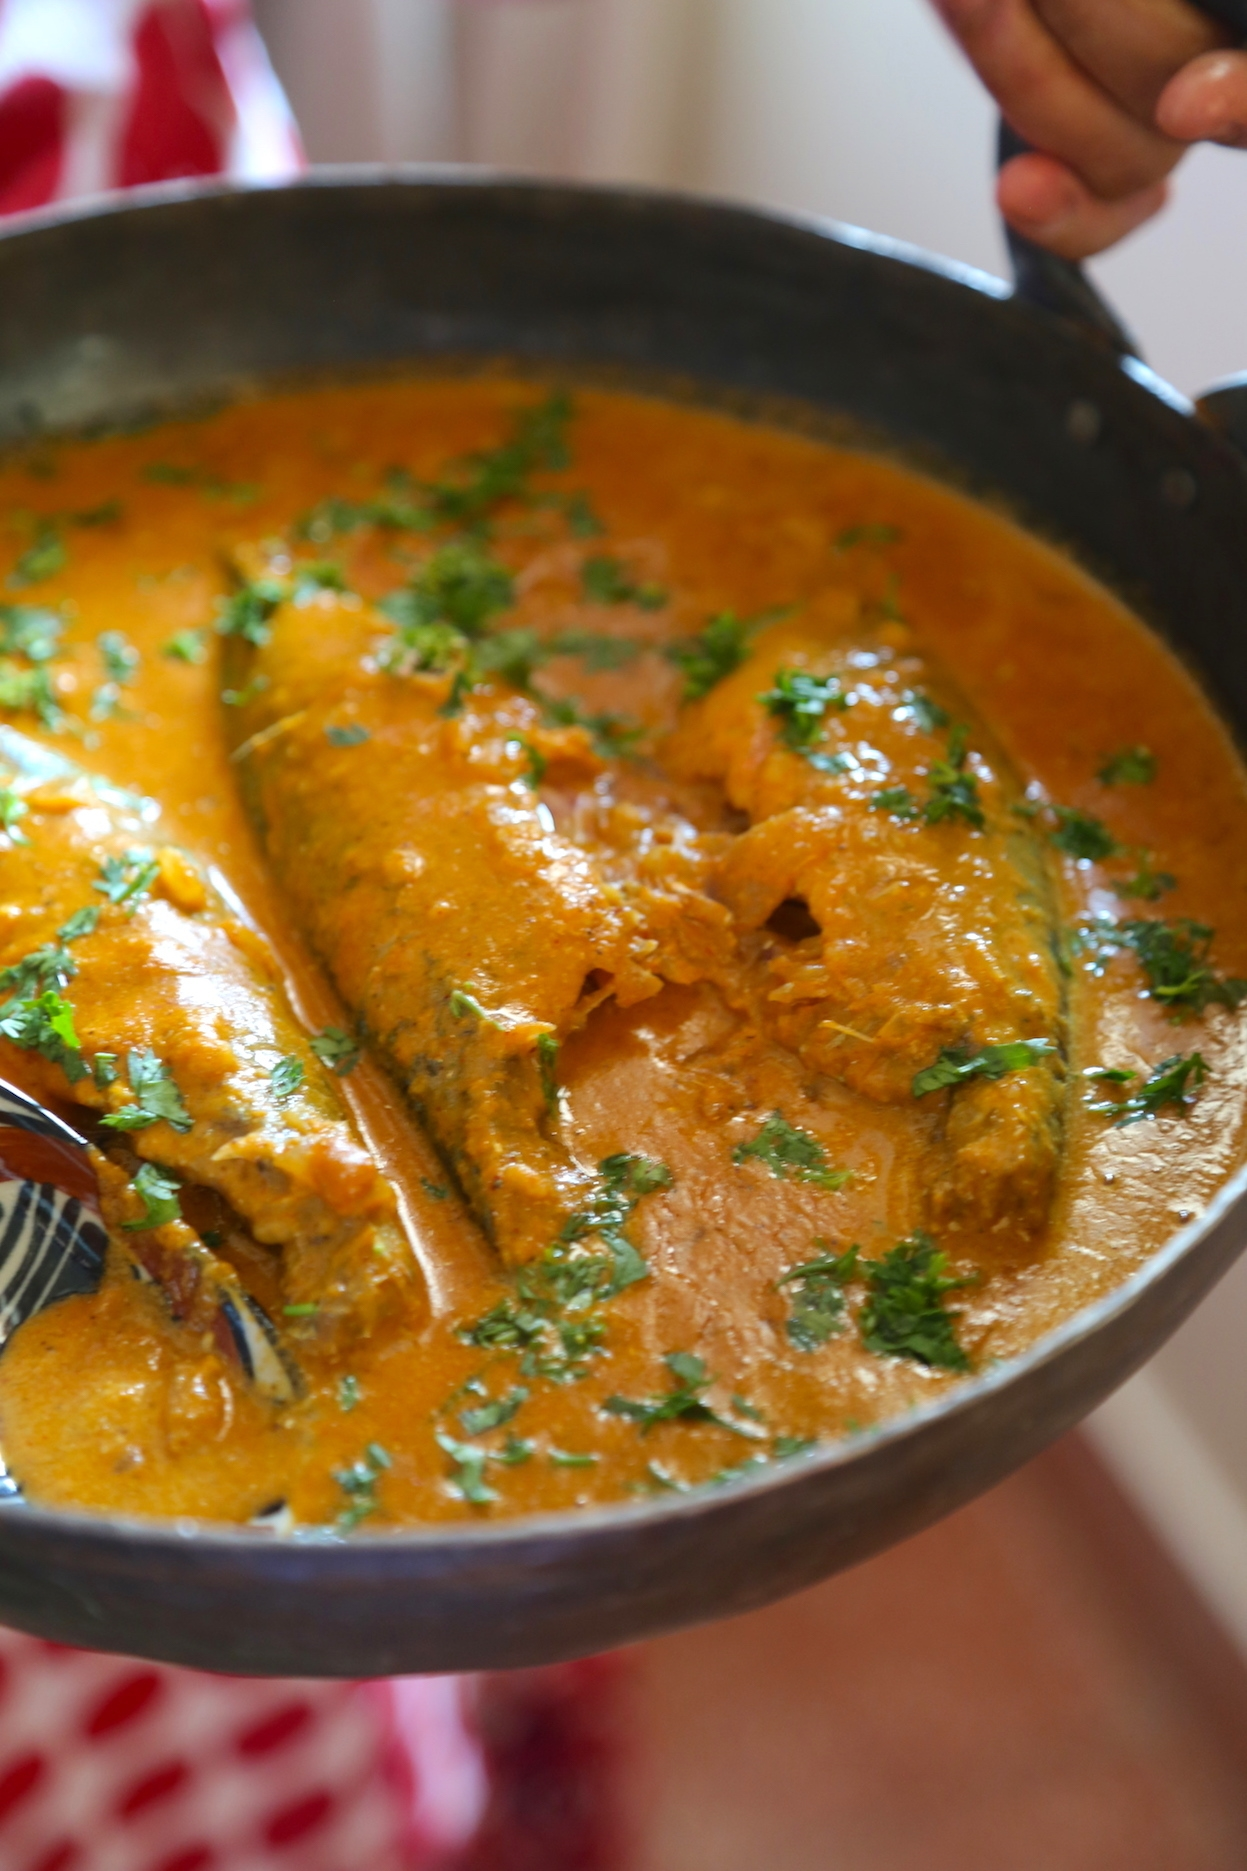 BANGDA UDID METHI-INDIAN MACKEREL CURRY WITH FENUGREEK, BLACK GRAM